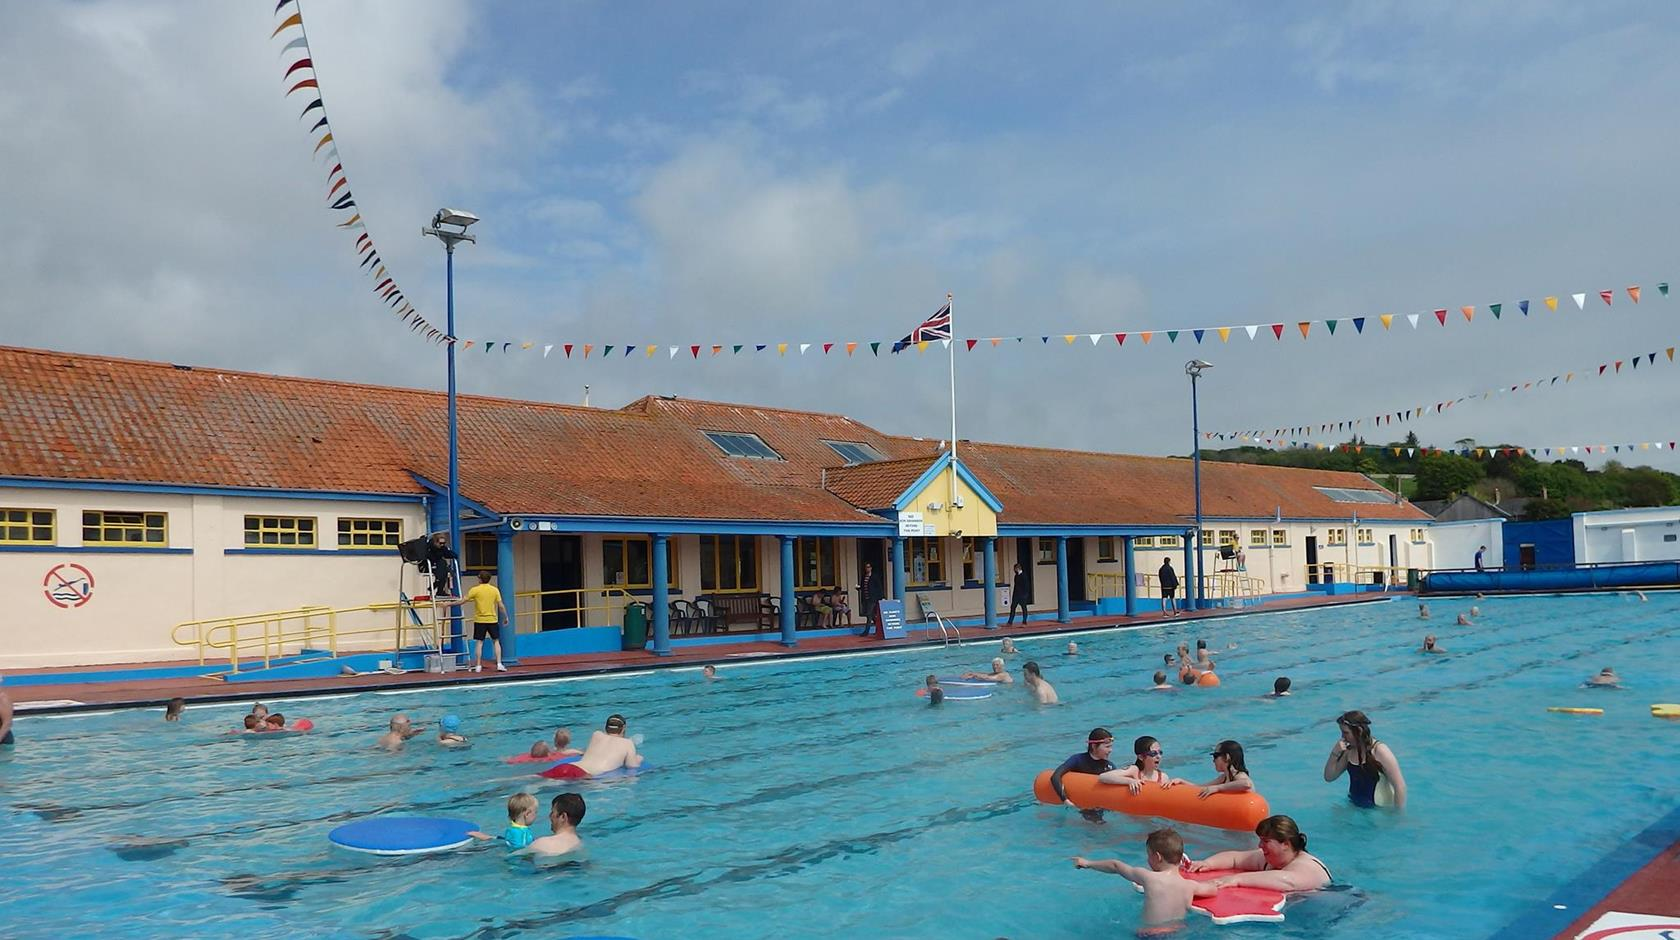 Stonehaven Open-Air Swimming Pool Aberdeen and the Northeast, Things To Do In Stonehaven | Day Out With The Kids